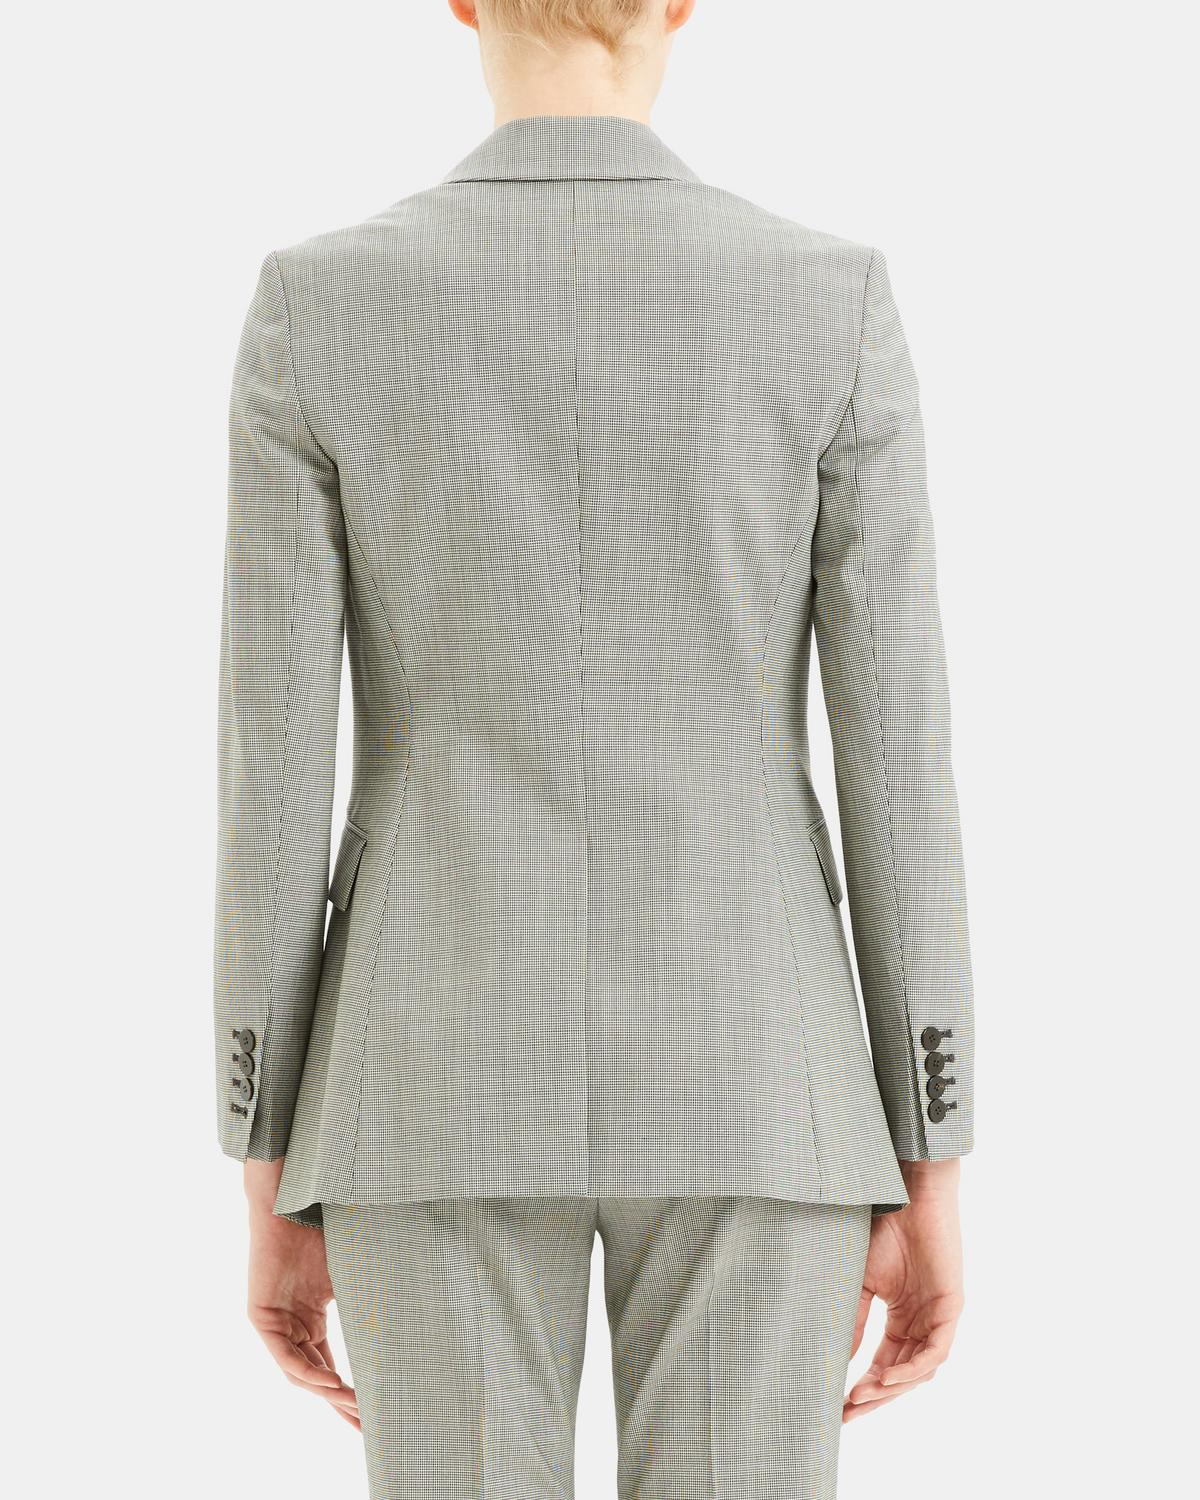 Etiennette Blazer in Houndstooth Good Wool